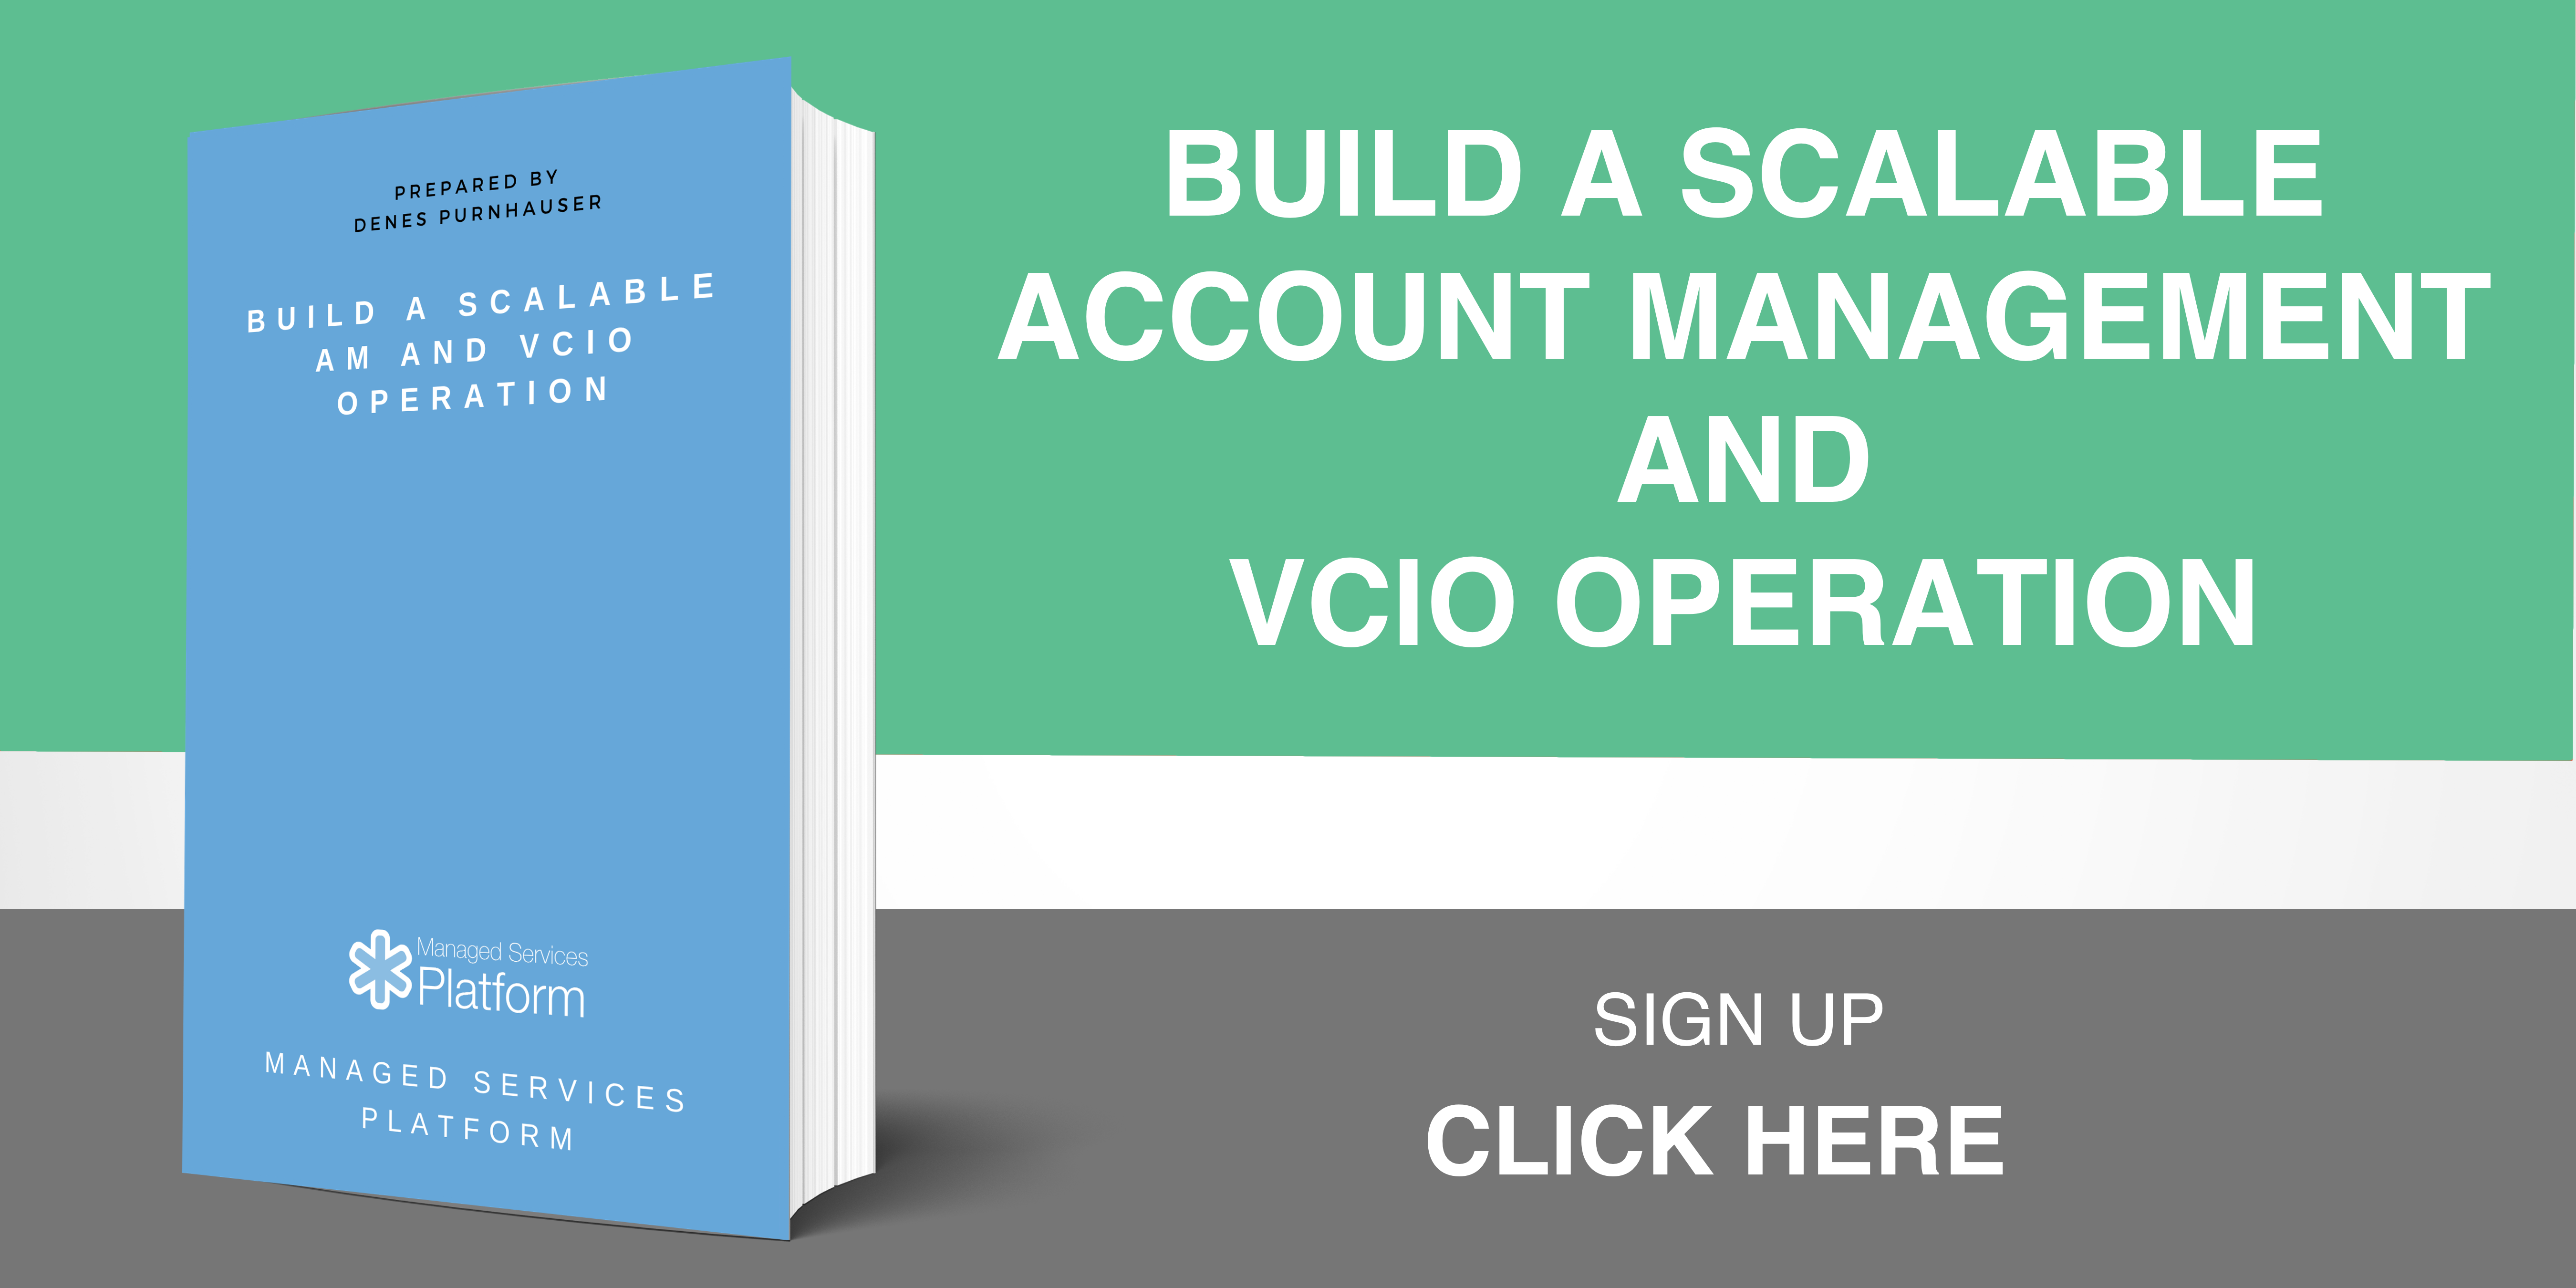 Build a scalable Account Management and vCIO operation